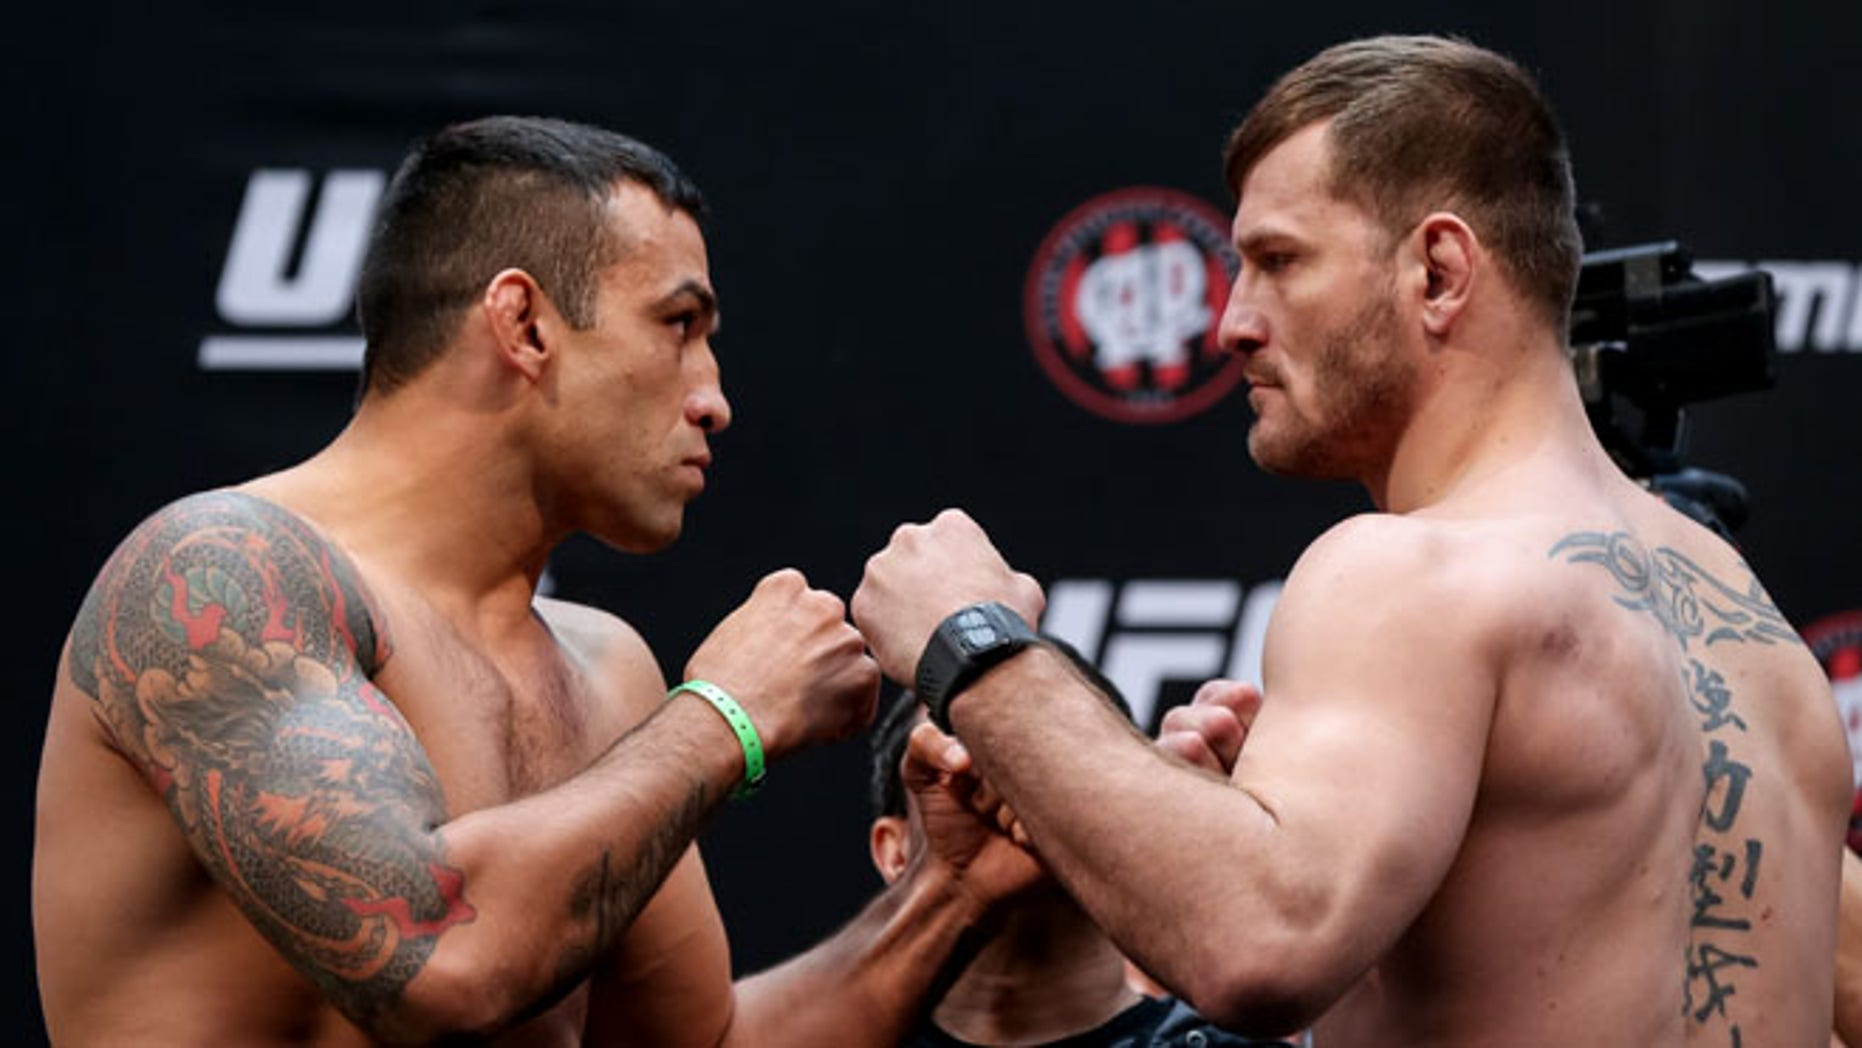 CURITIBA, BRAZIL - MAY 13:  (L-R) Opponents Fabricio Werdum of Brazil and Stipe Miocic of the United States face off during the UFC 198 weigh-in at Arena da Baixada stadium on May 13, 2016 in Curitiba, Brazil. (Photo by Buda Mendes/Getty Images)